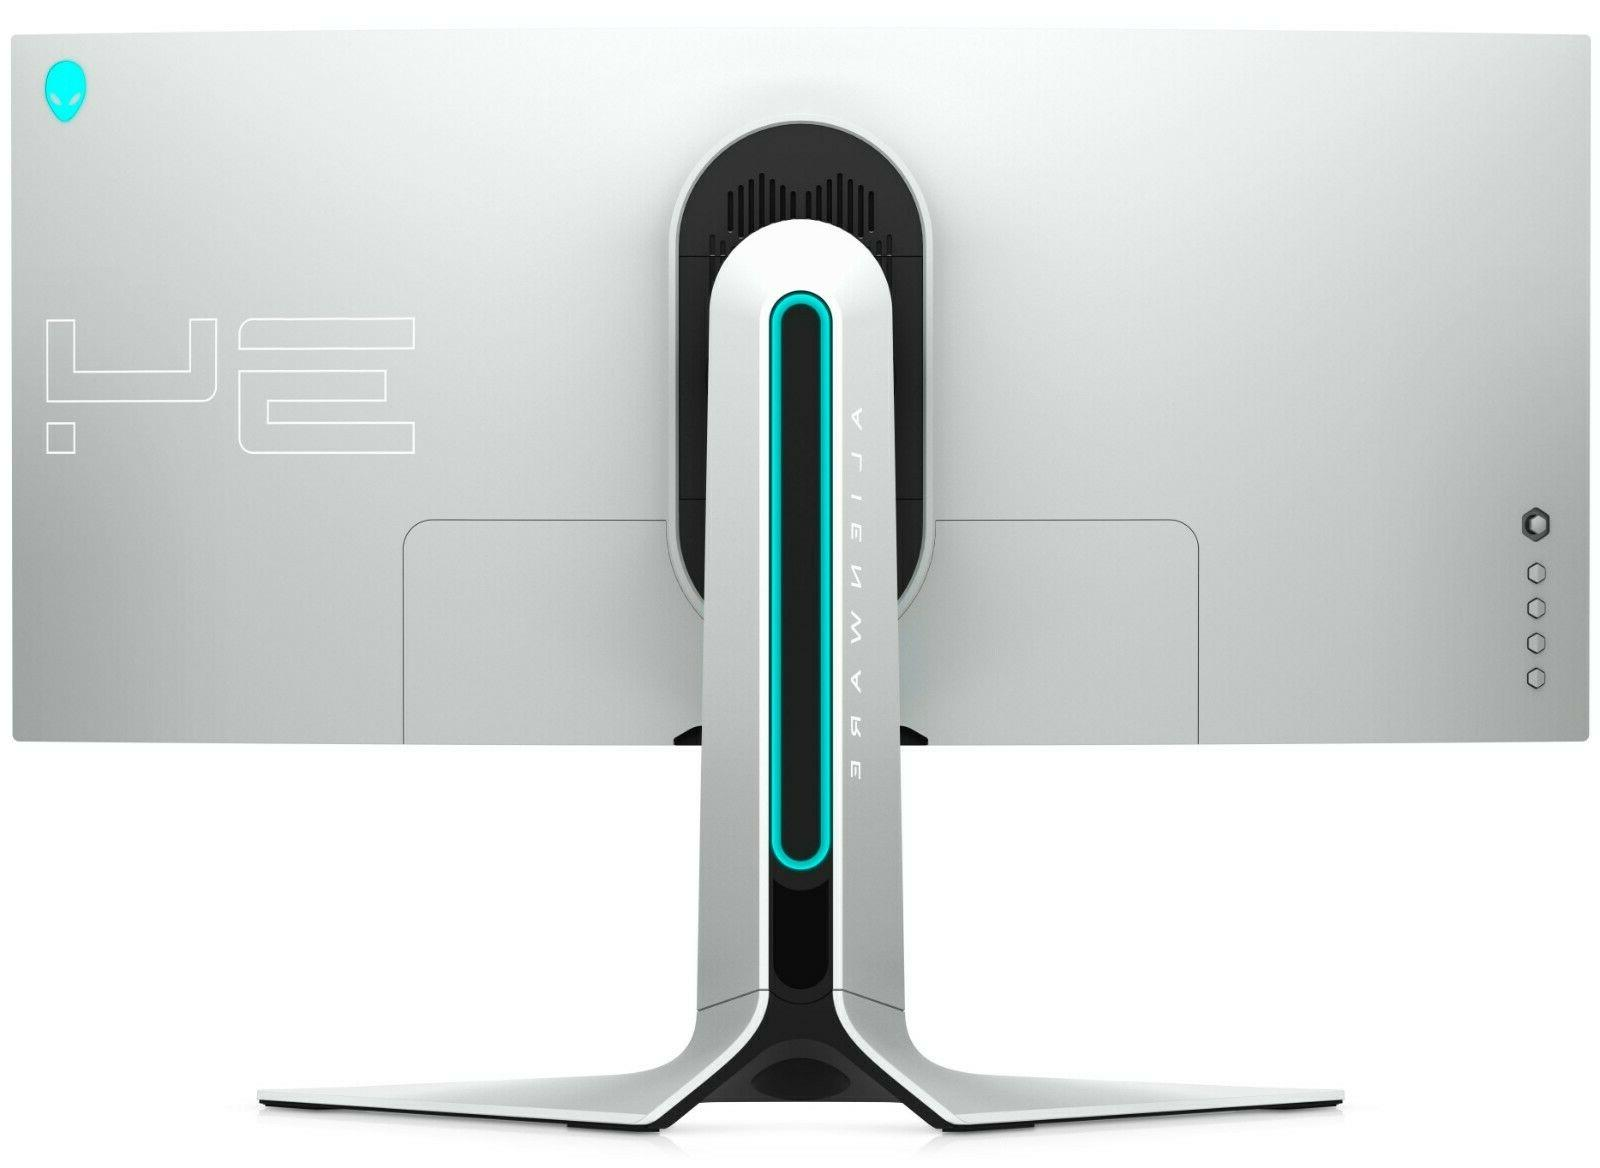 NEW AW3420DW 120Hz Curved Ultrawide Gaming